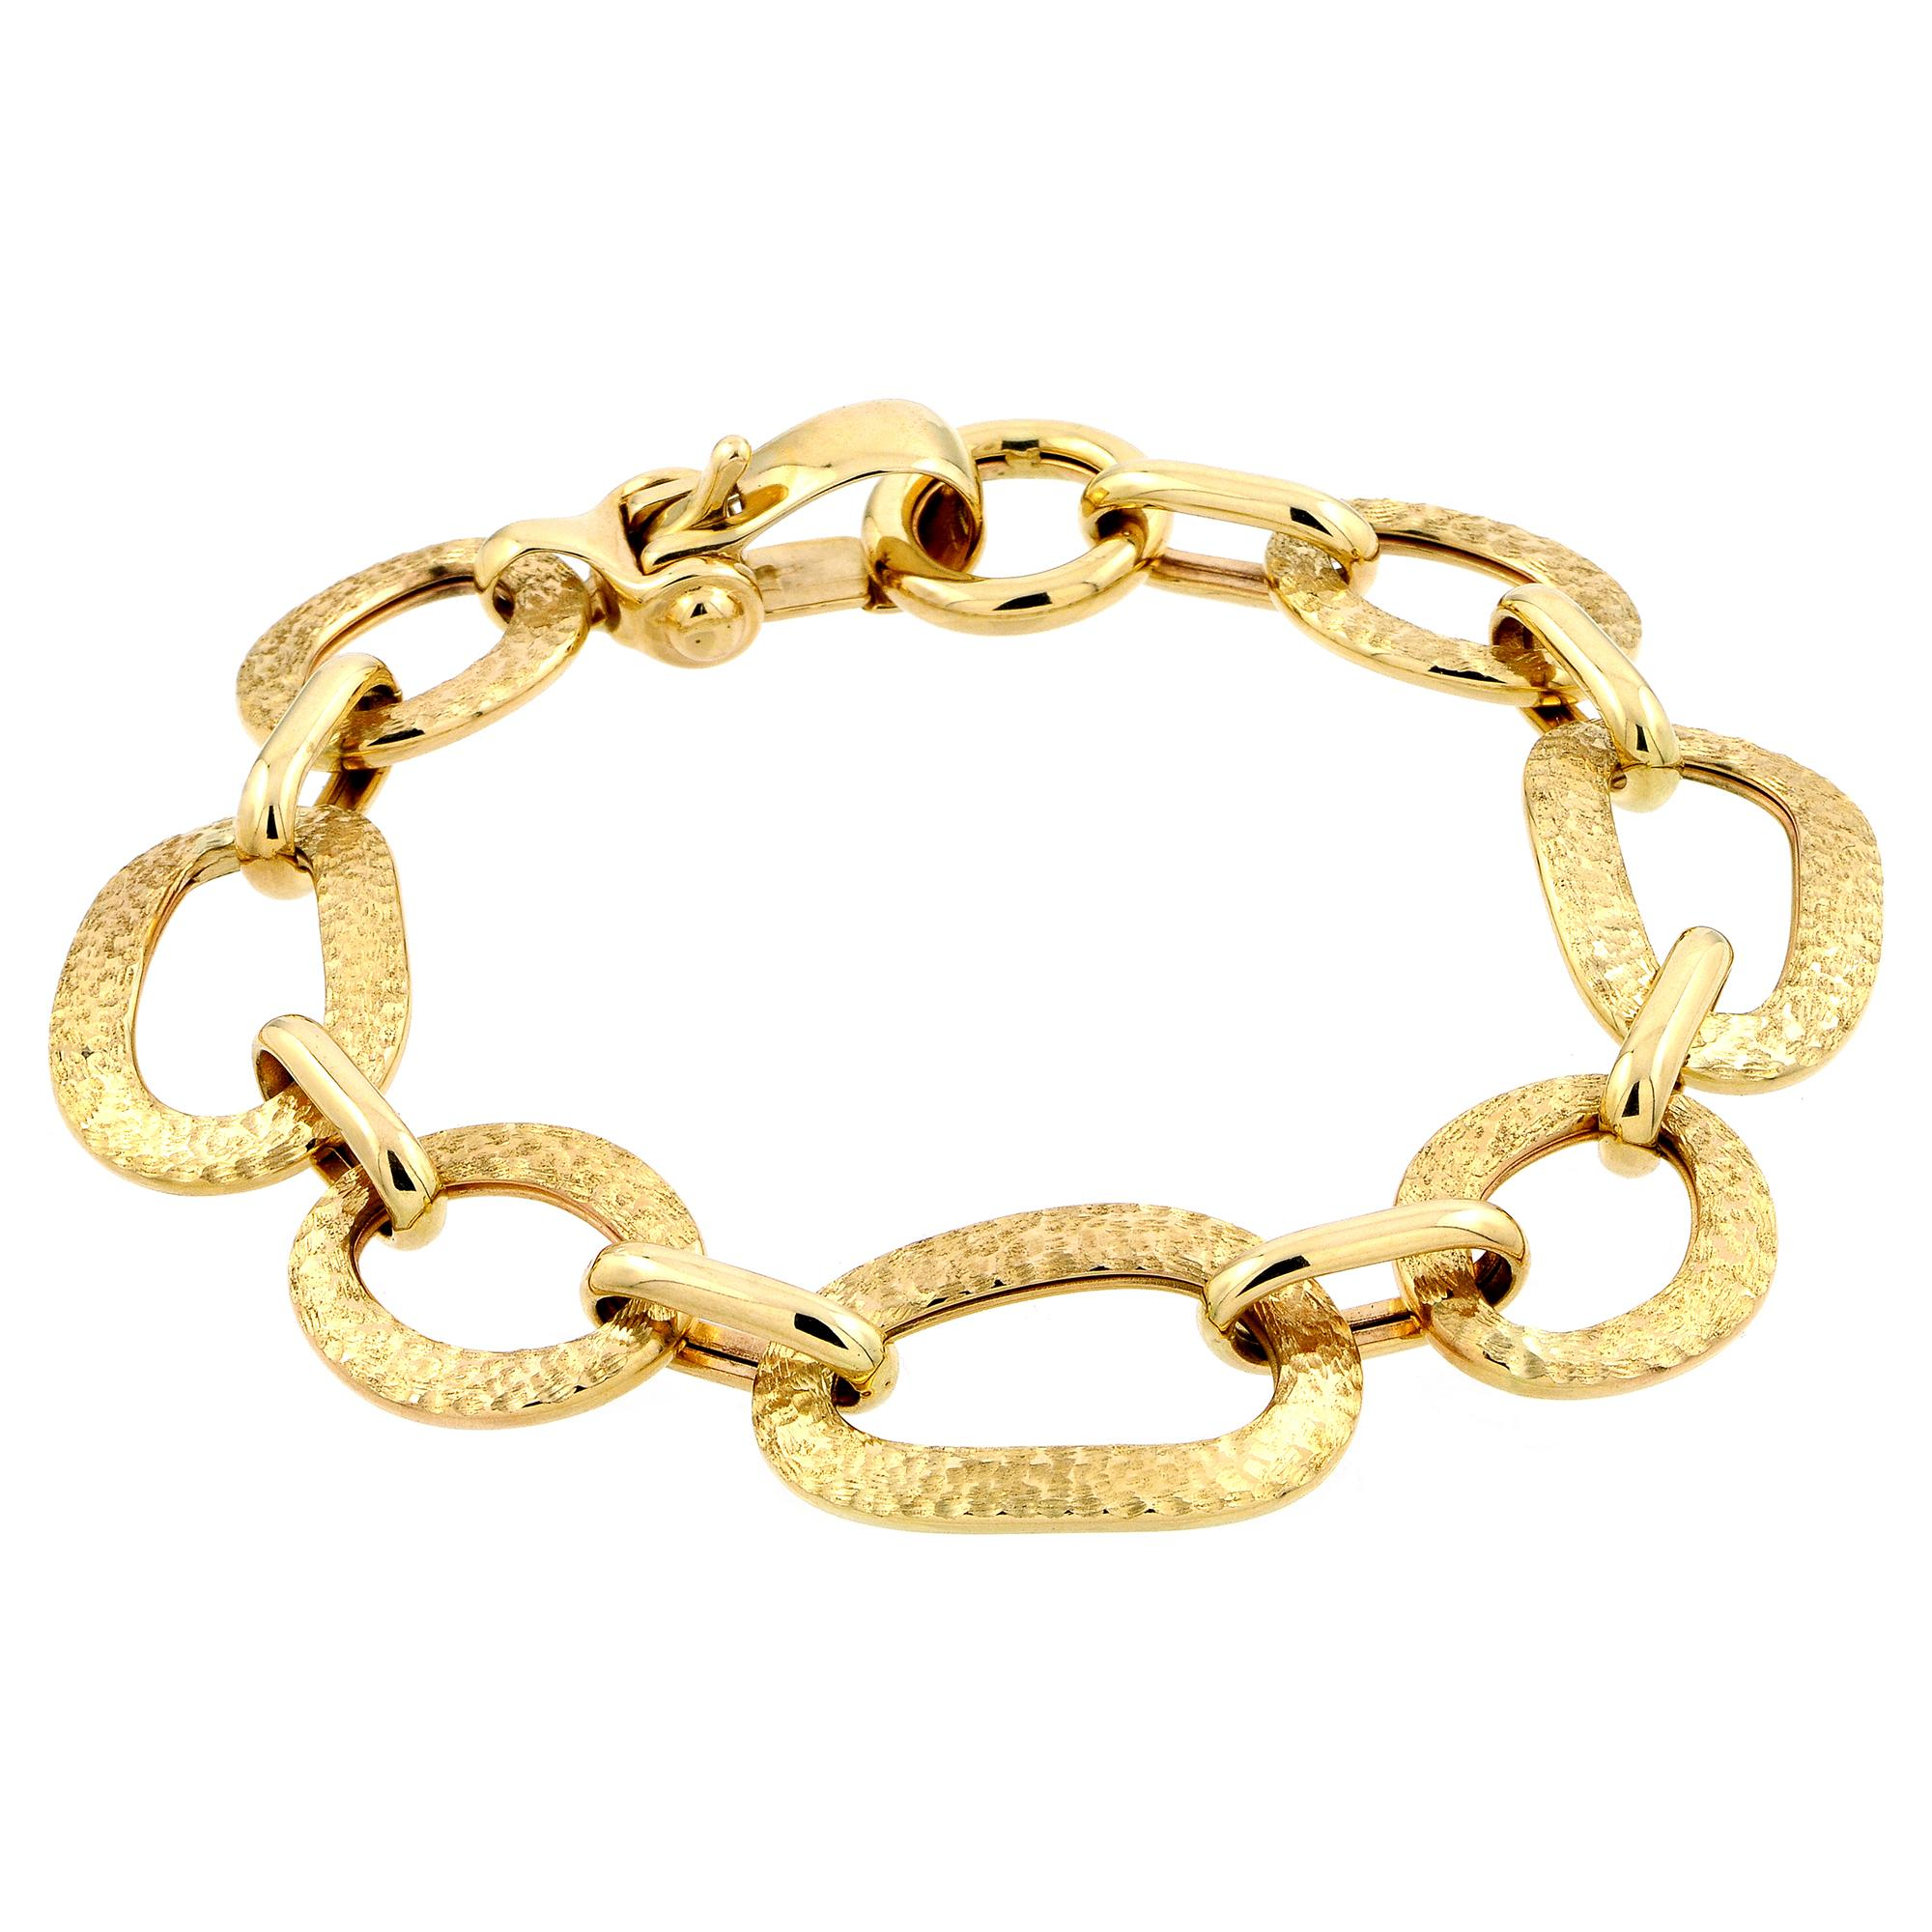 Amazon.com: 14k Yellow Gold Italian Hammered Bracelet, 7.5